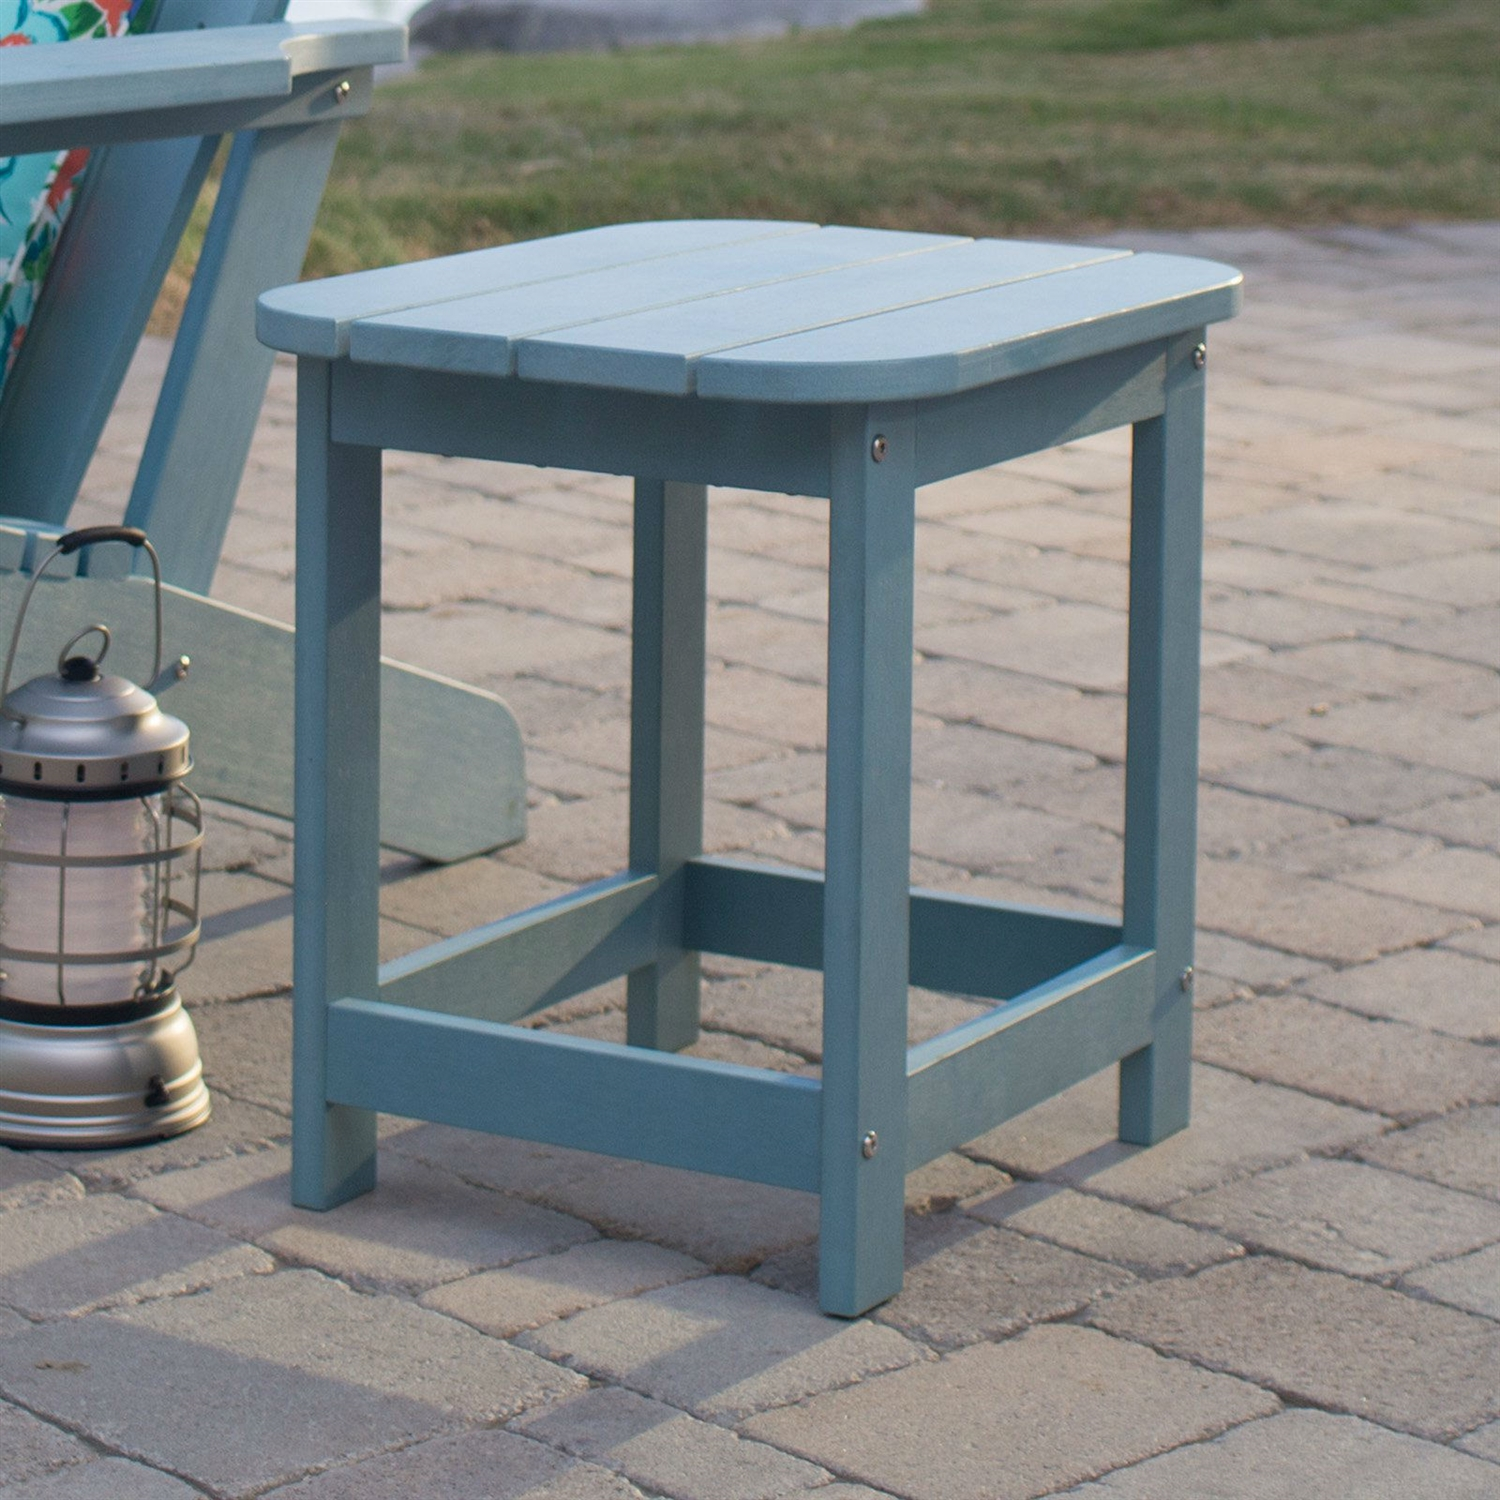 Picture of: Outdoor Deck Patio Side Table In Blue Green Resin Wood Look Finish Fastfurnishings Com